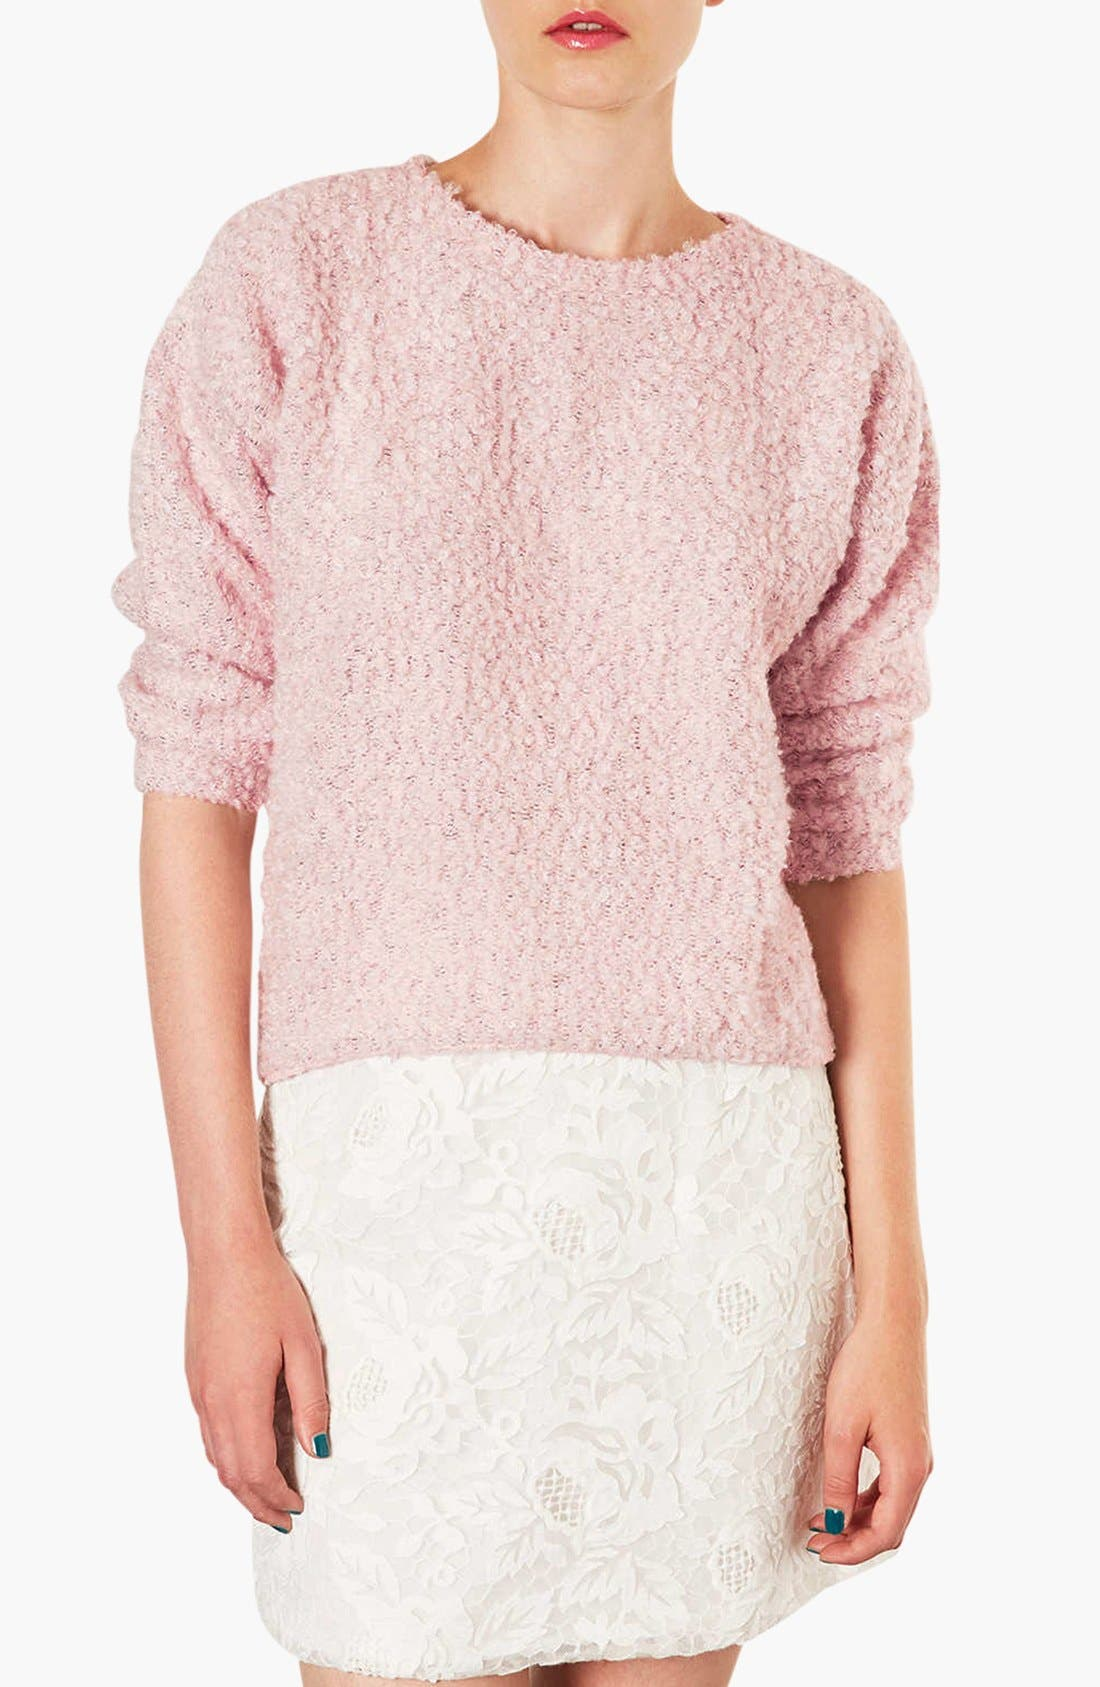 Alternate Image 1 Selected - Topshop Textured Sweater